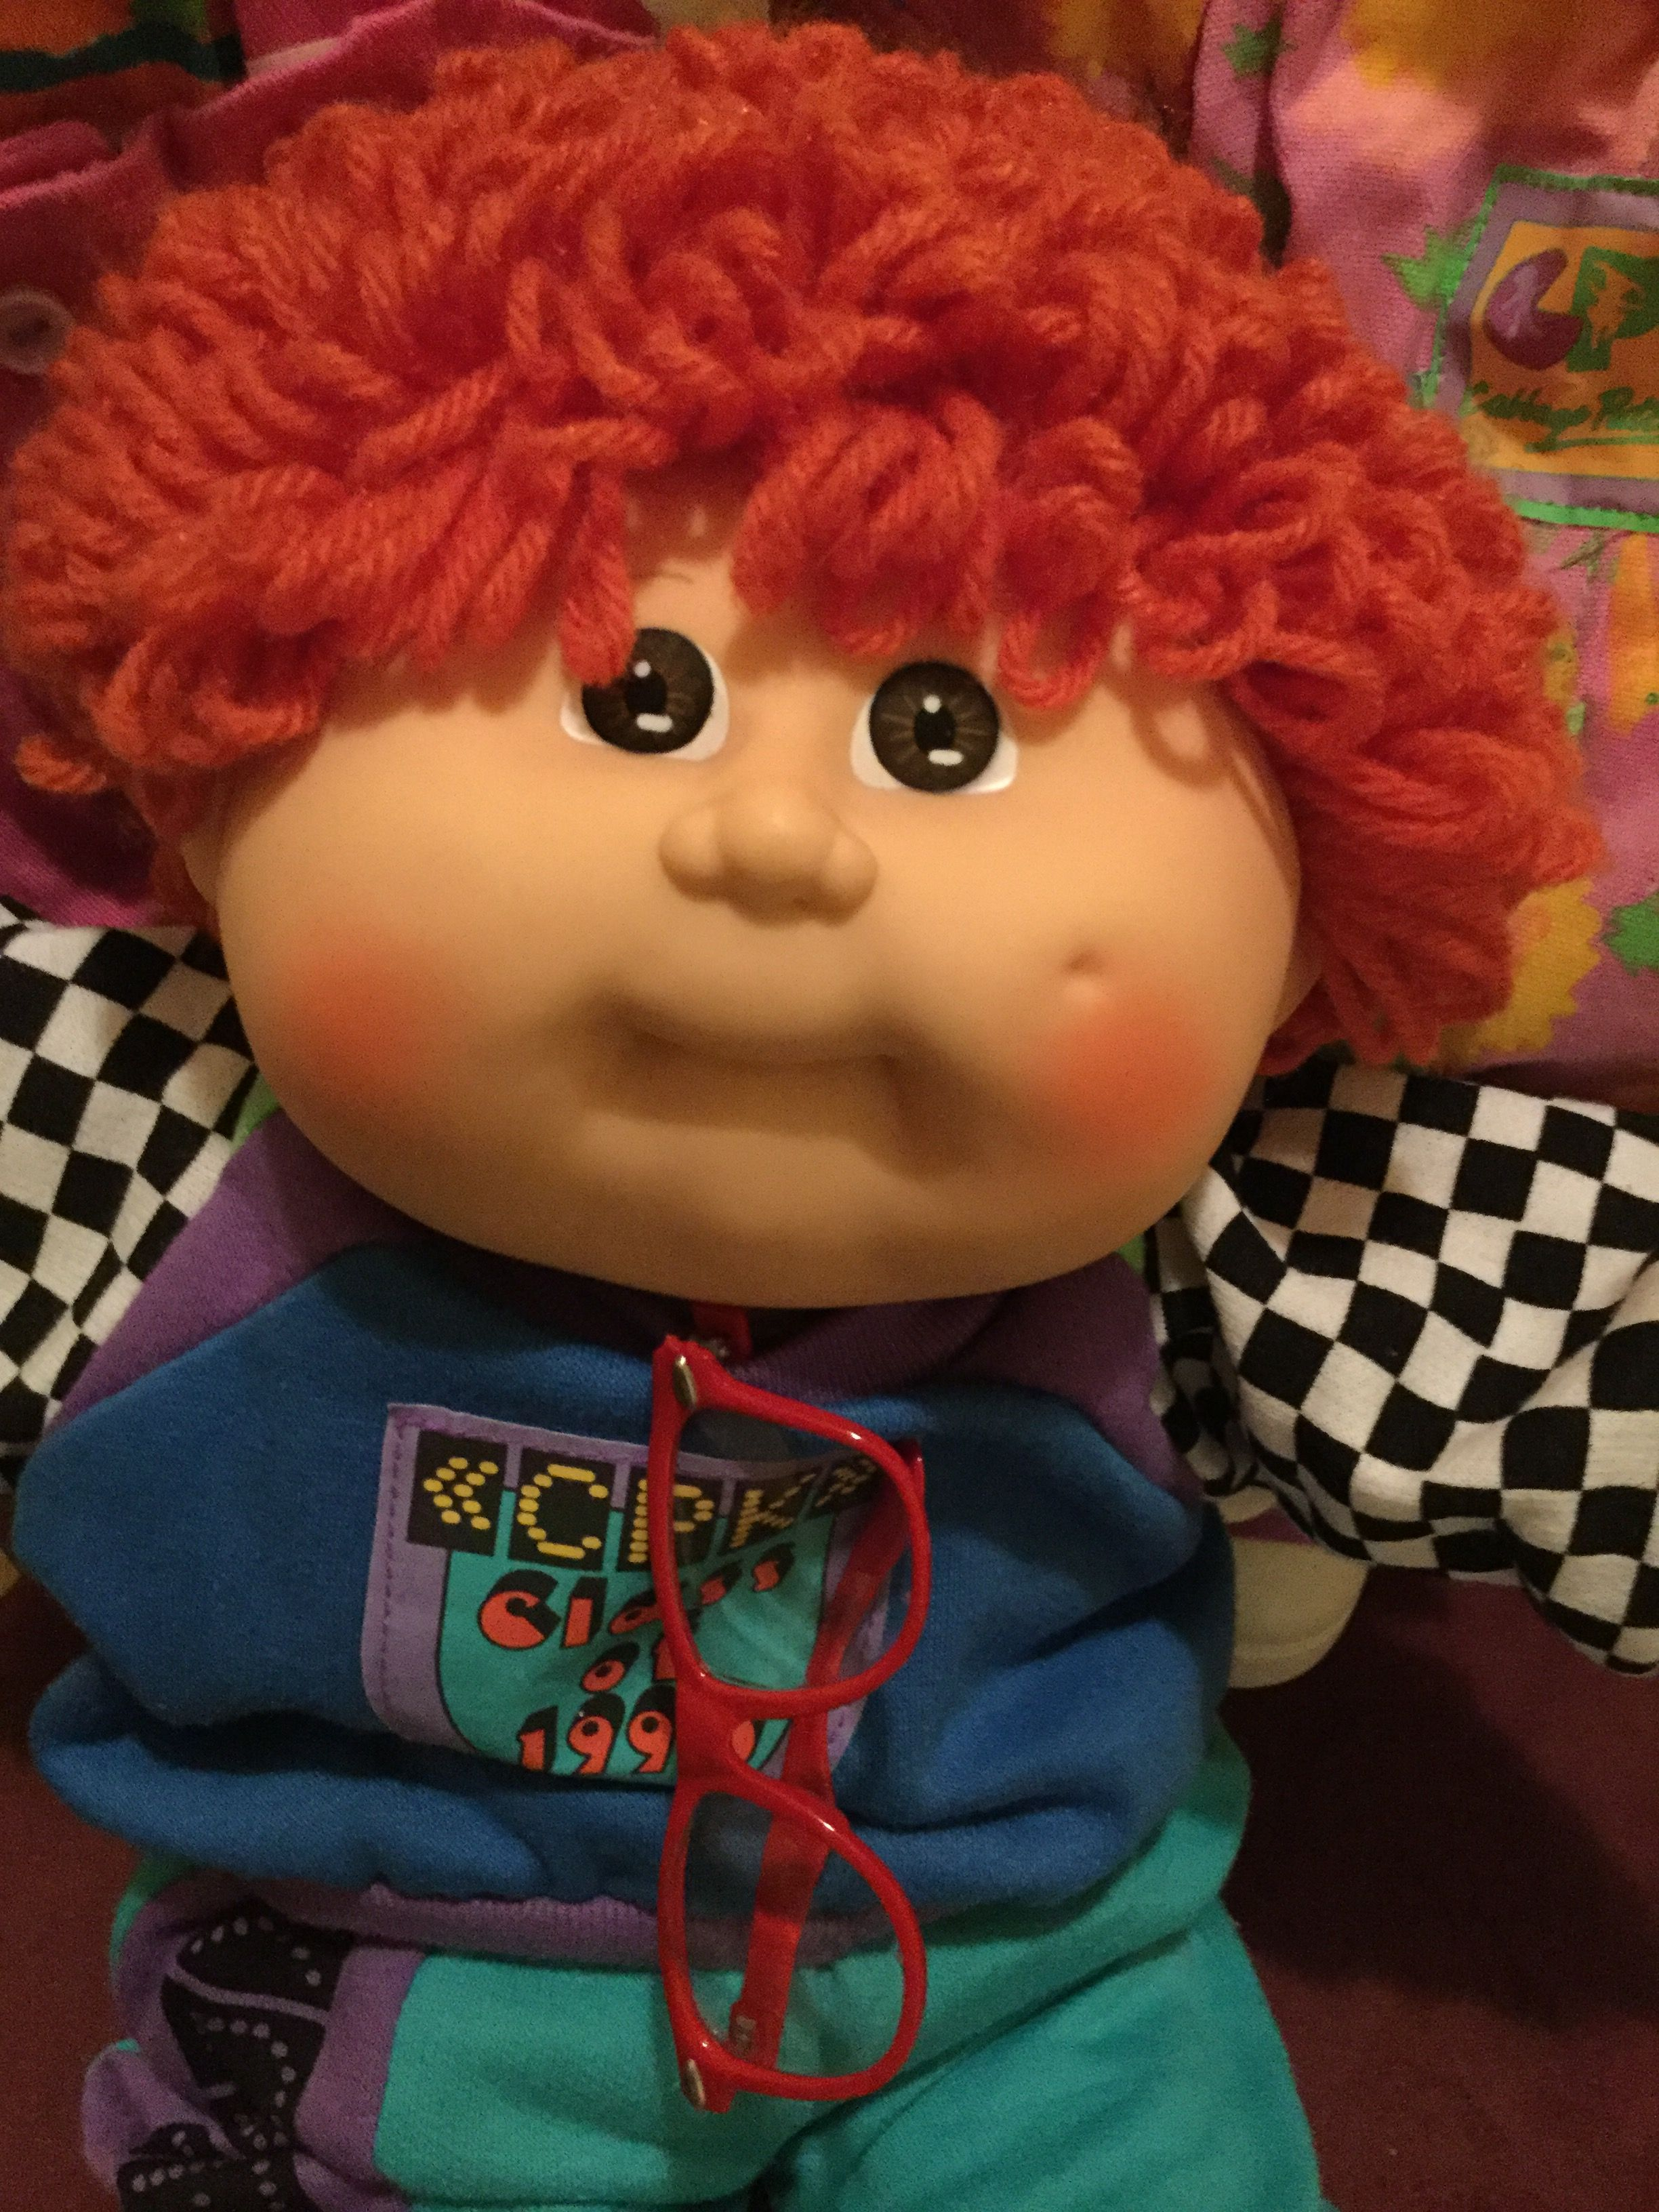 Pin By Rosel Jung On Cpks Love Em Cabbage Patch Babies Cabbage Patch Dolls Cabbage Patch Kids